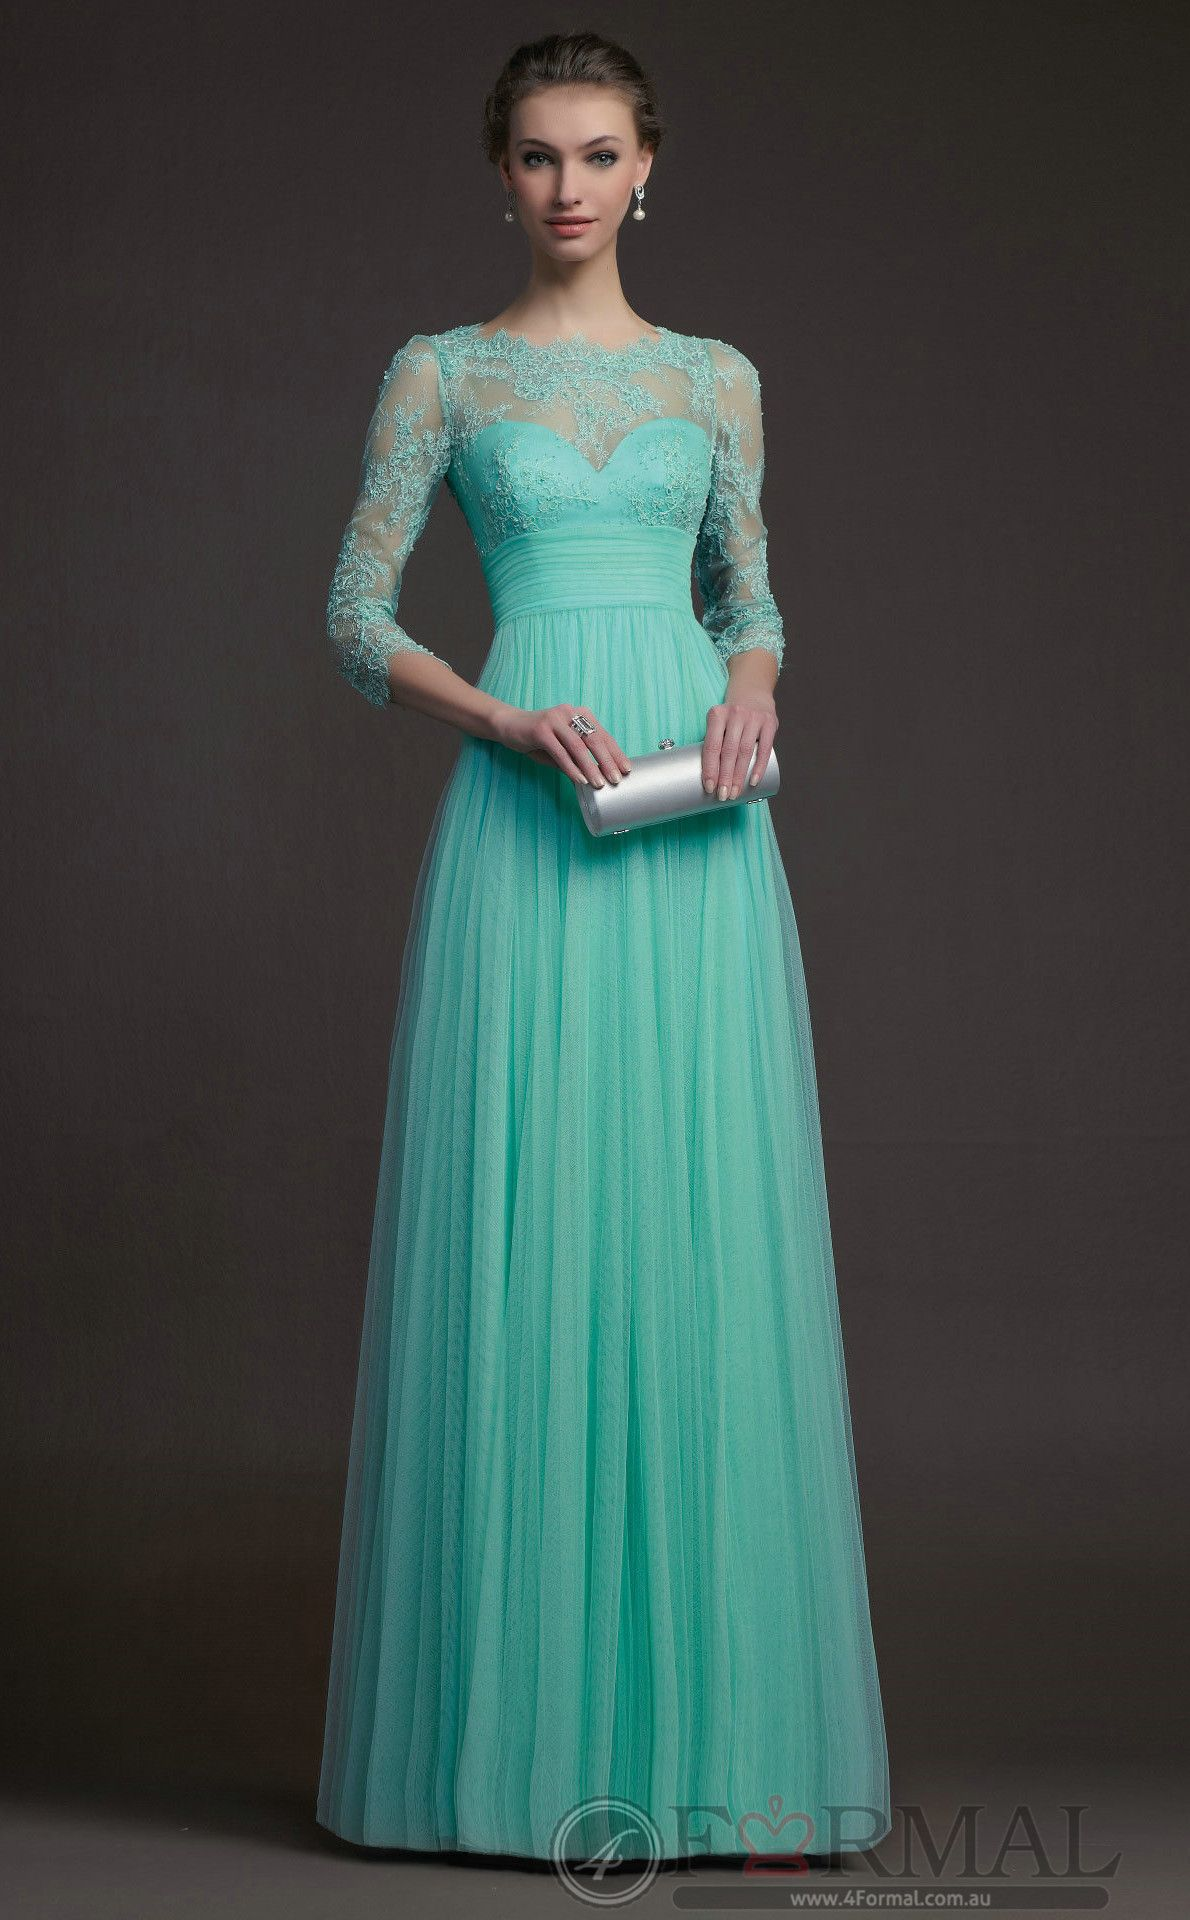 Green Lace Long Semi-Formal Formal Evening Gowns with Long Sleeves ...